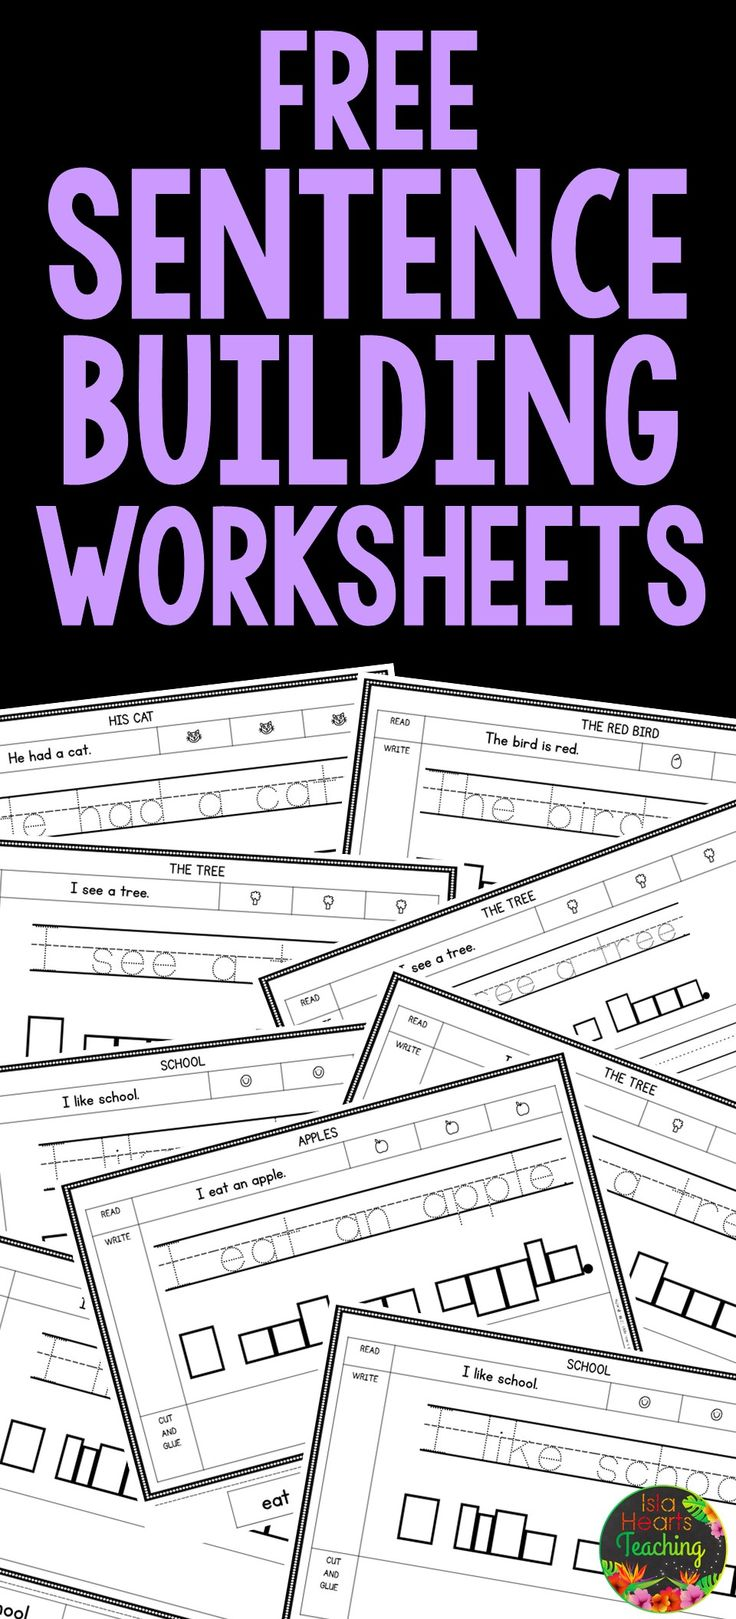 FREE Sentence Building Worksheets (Great for literacy centers, reading groups, writing lessons and morning work) #islaheartsteaching